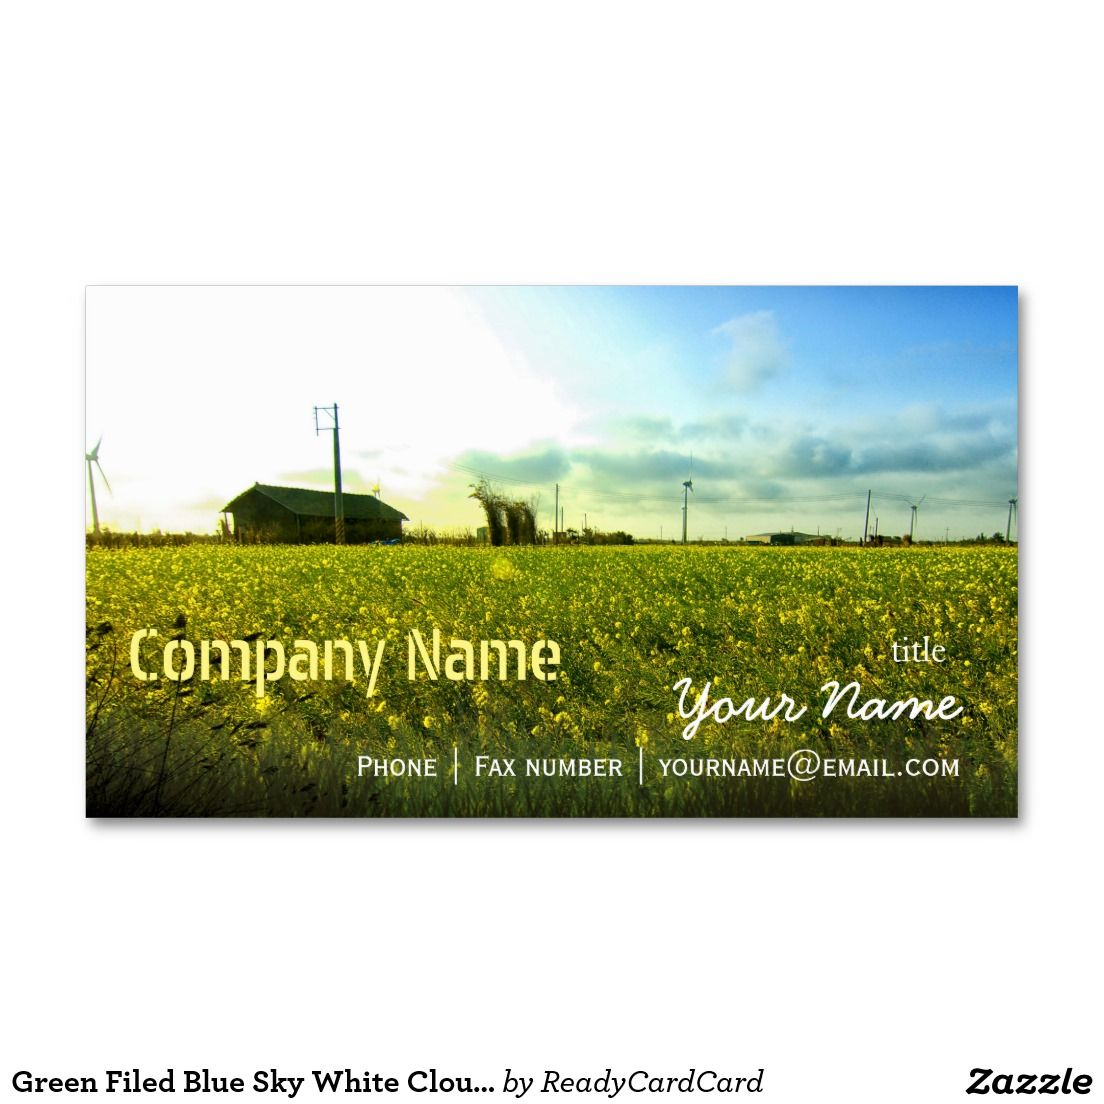 Green filed blue sky white cloud nature farm business card green filed blue sky white cloud nature farm business card magicingreecefo Choice Image